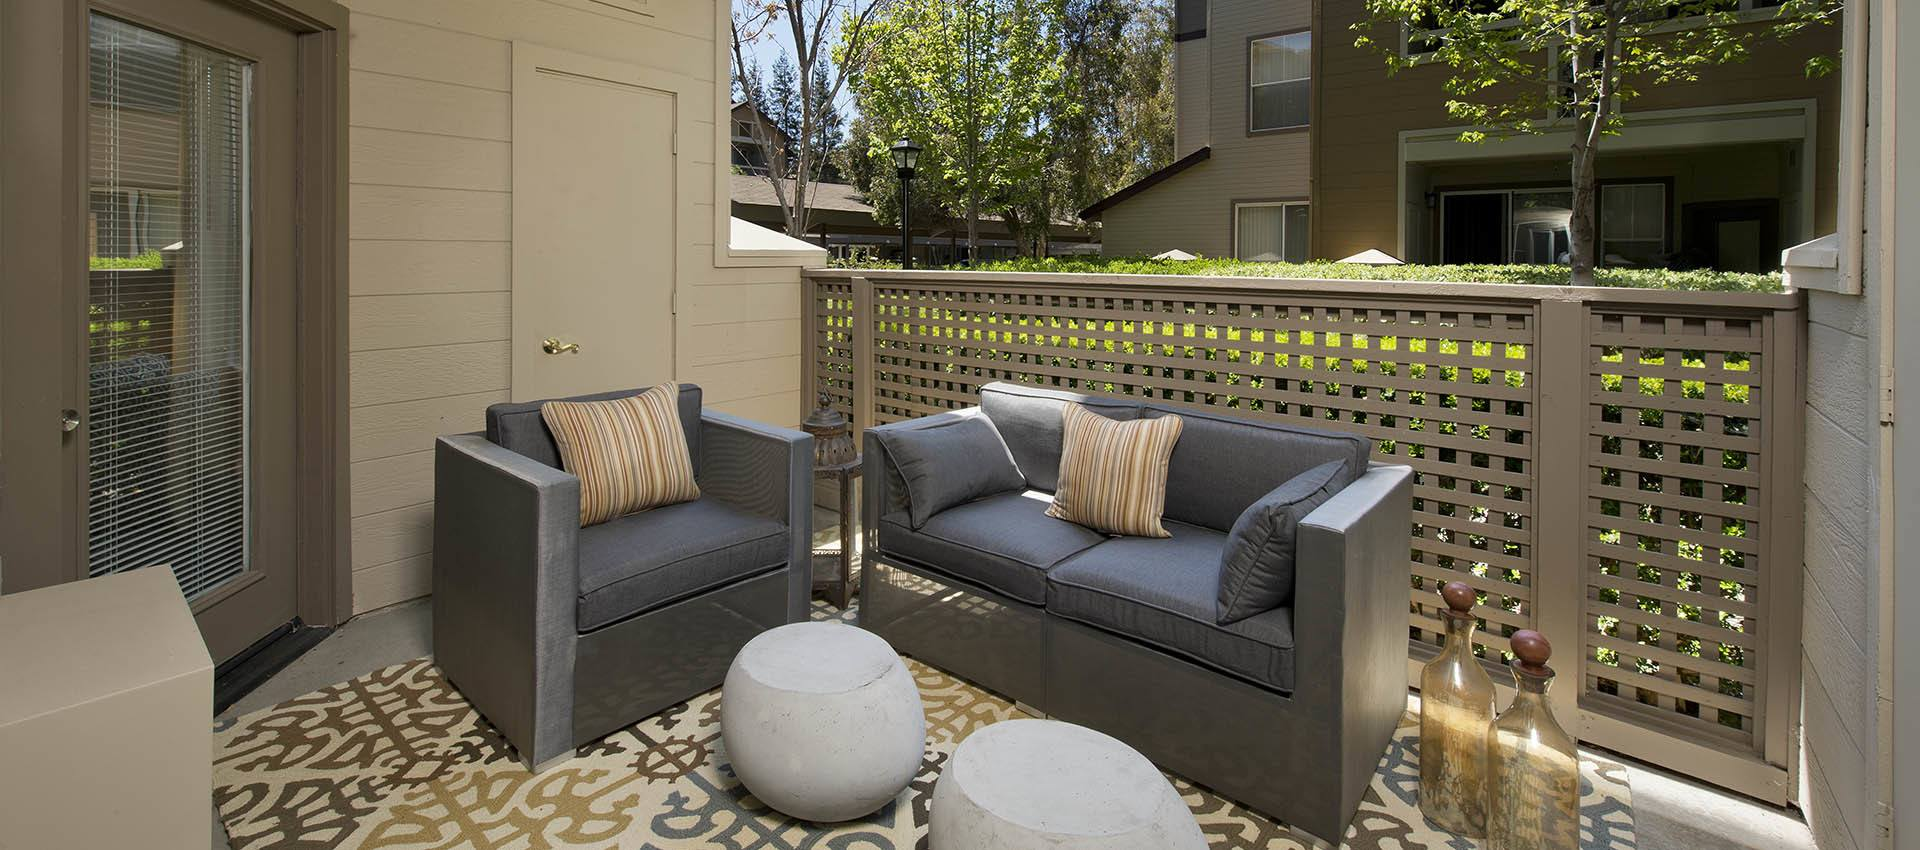 Outdoor Seating On Back Porch at Rosewalk at San Jose